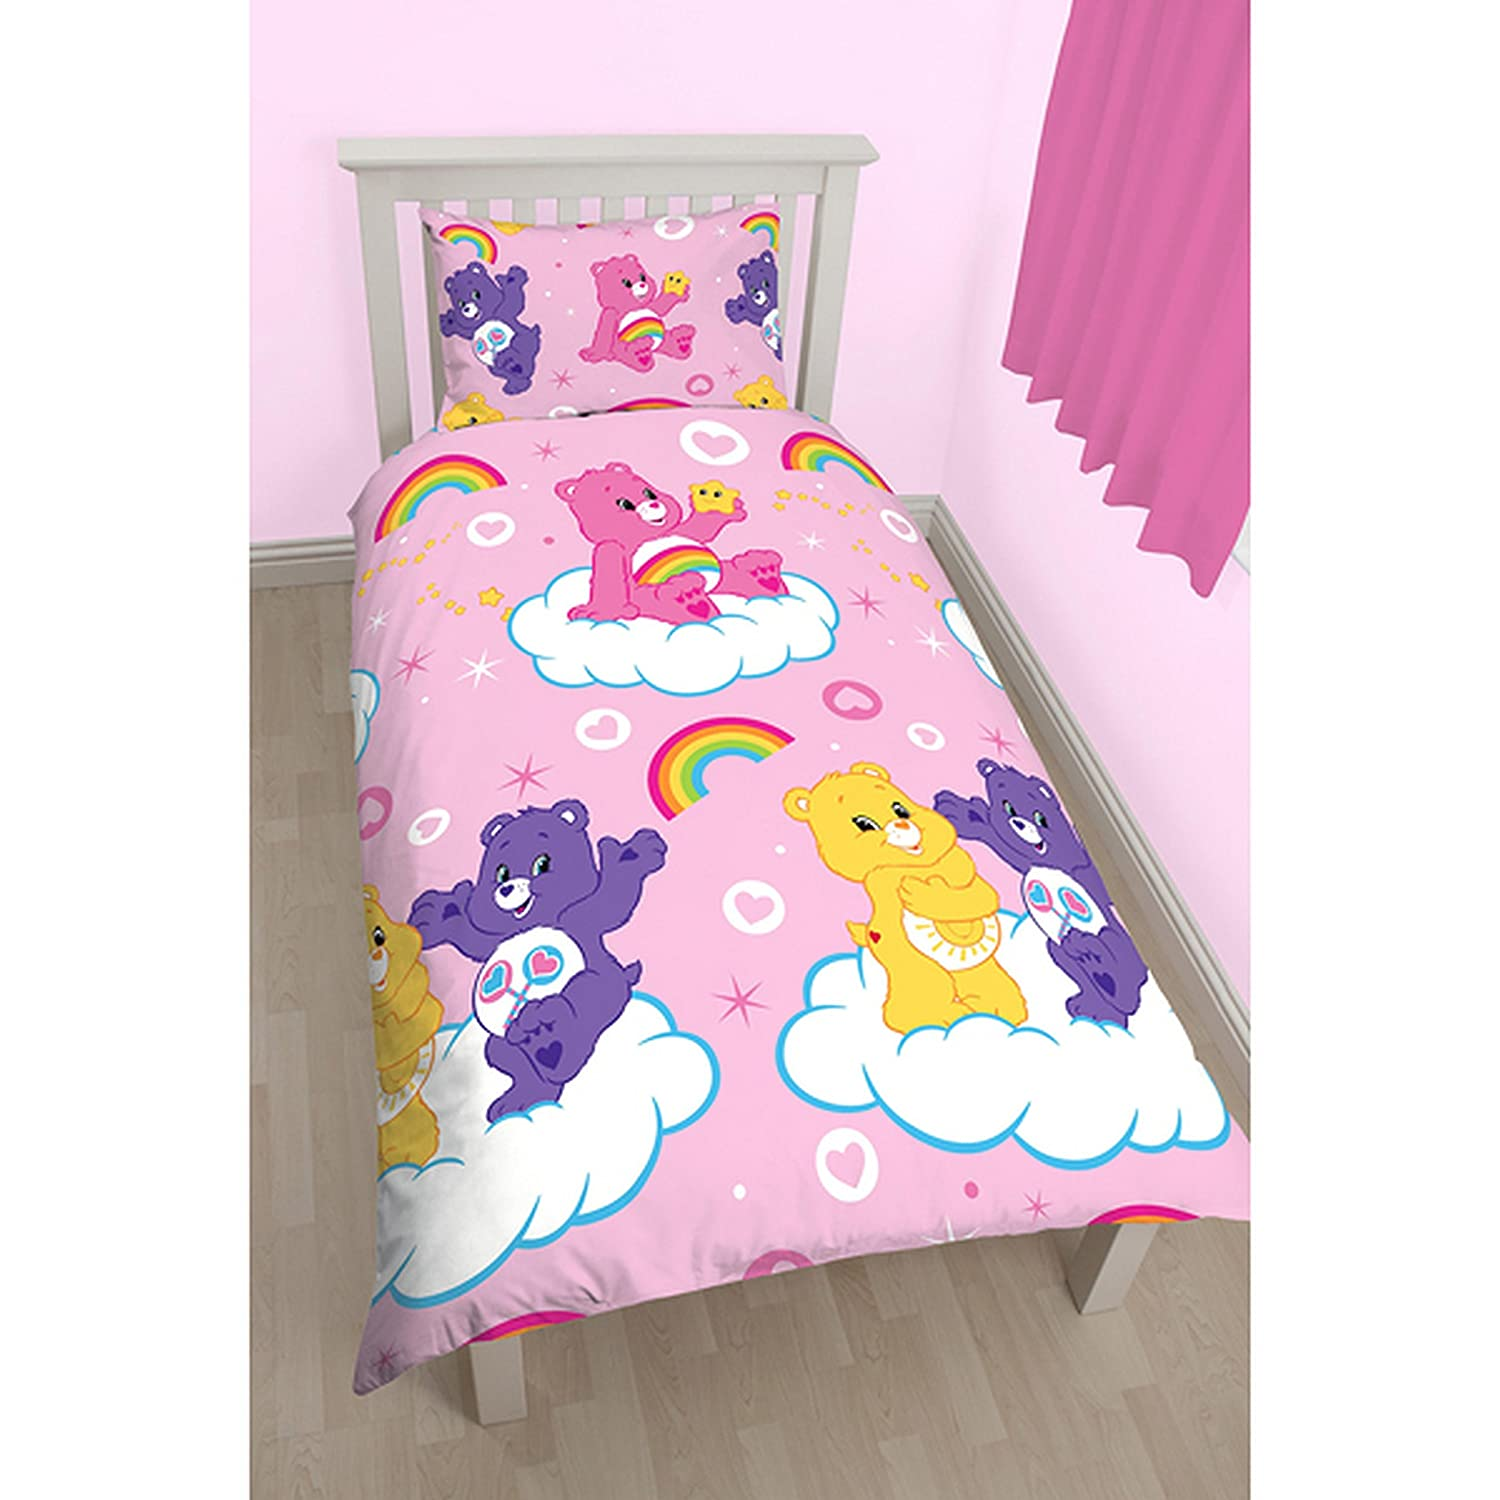 Care Bears 'Share' Single Duvet Set - Repeat Print Design Character World CBSSHRDS002UK1